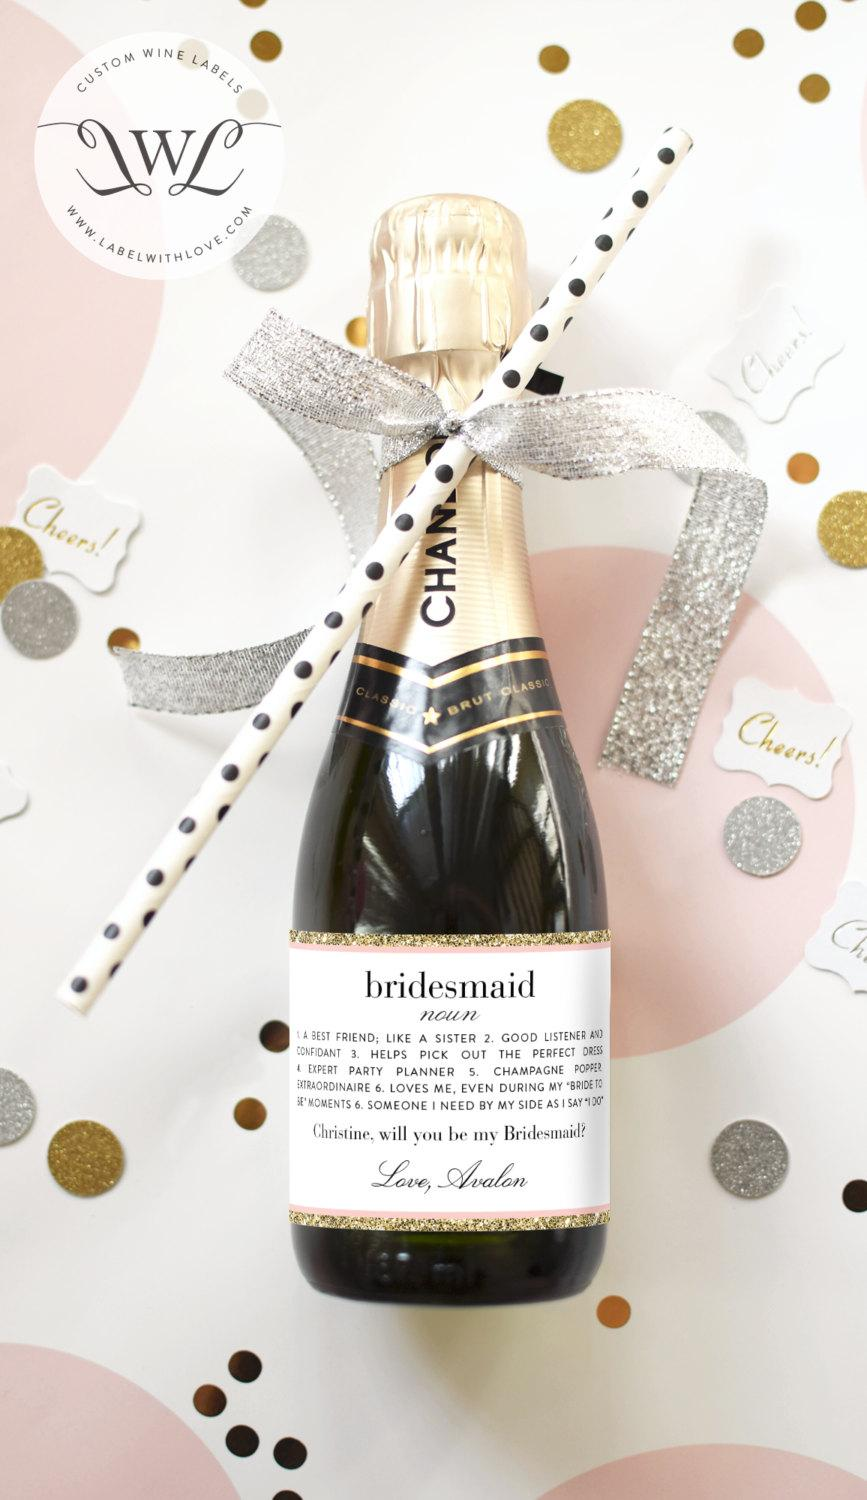 Wedding - Custom Bridesmaid Proposal Gift - Bridesmaid Wine Bottle Label - Asking Bridesmaid Will You Be My Bridesmaid Champagne Label Gift